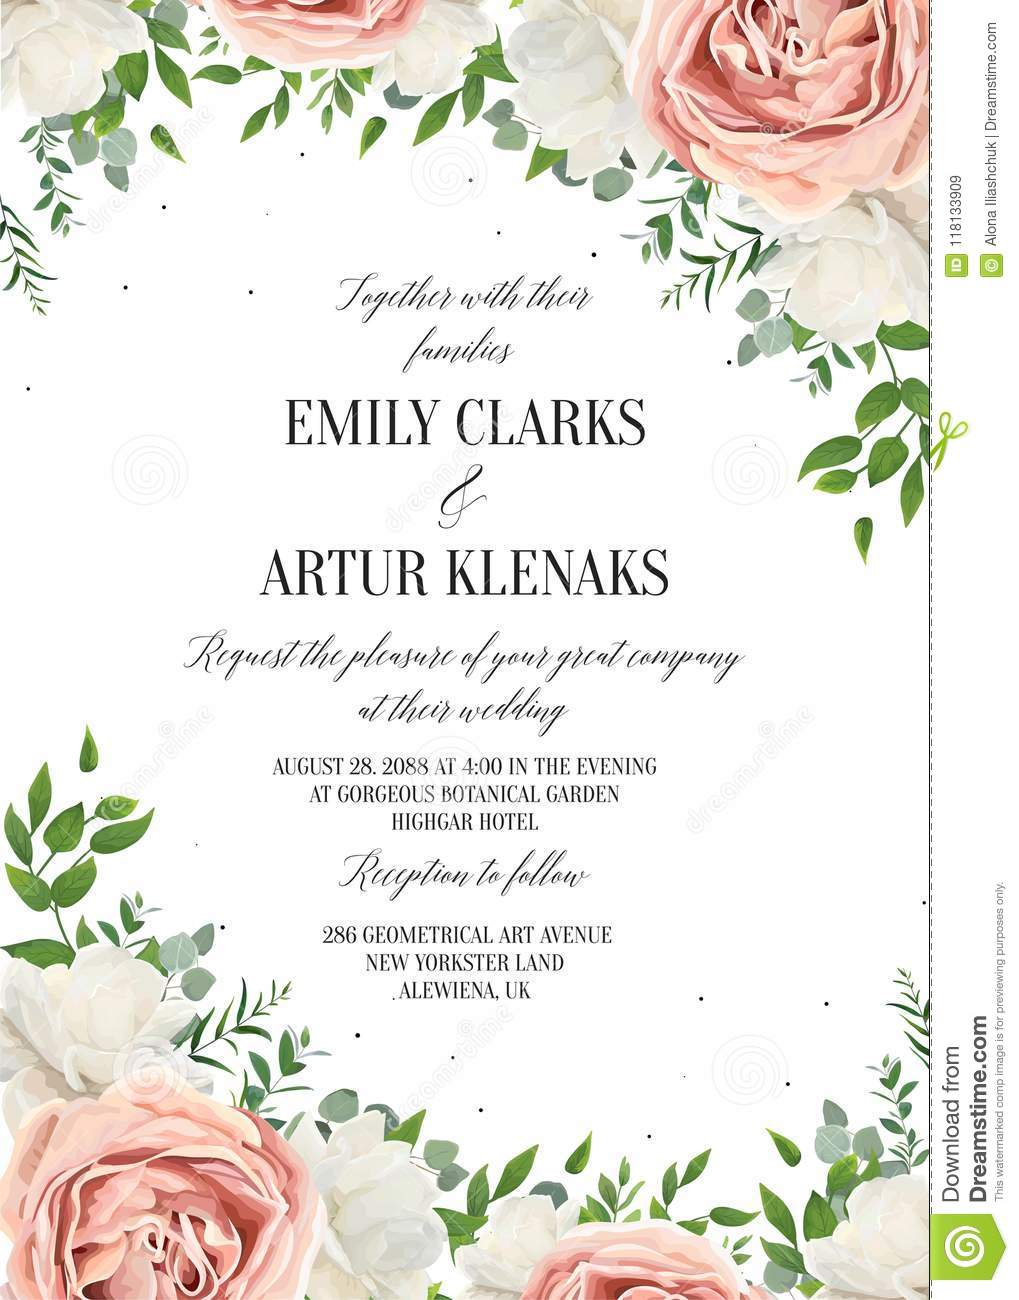 Wedding Floral Invite Invtation Save The Date Card Design